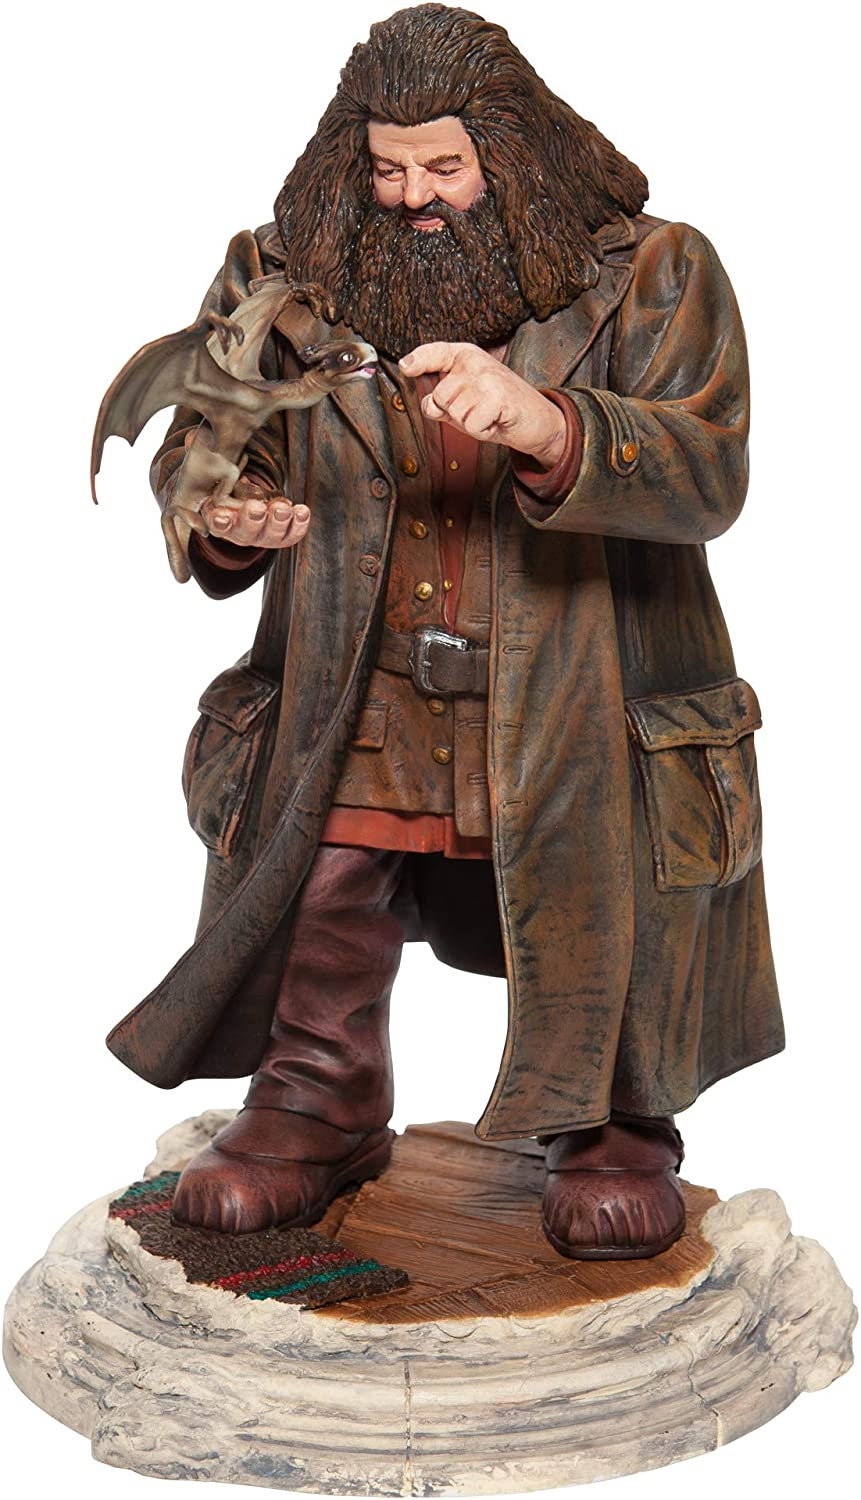 Enesco The Wizarding World of Harry Potter Hagrid and Norberta The Dragon Figurine, 11.75 Inch, Multicolor